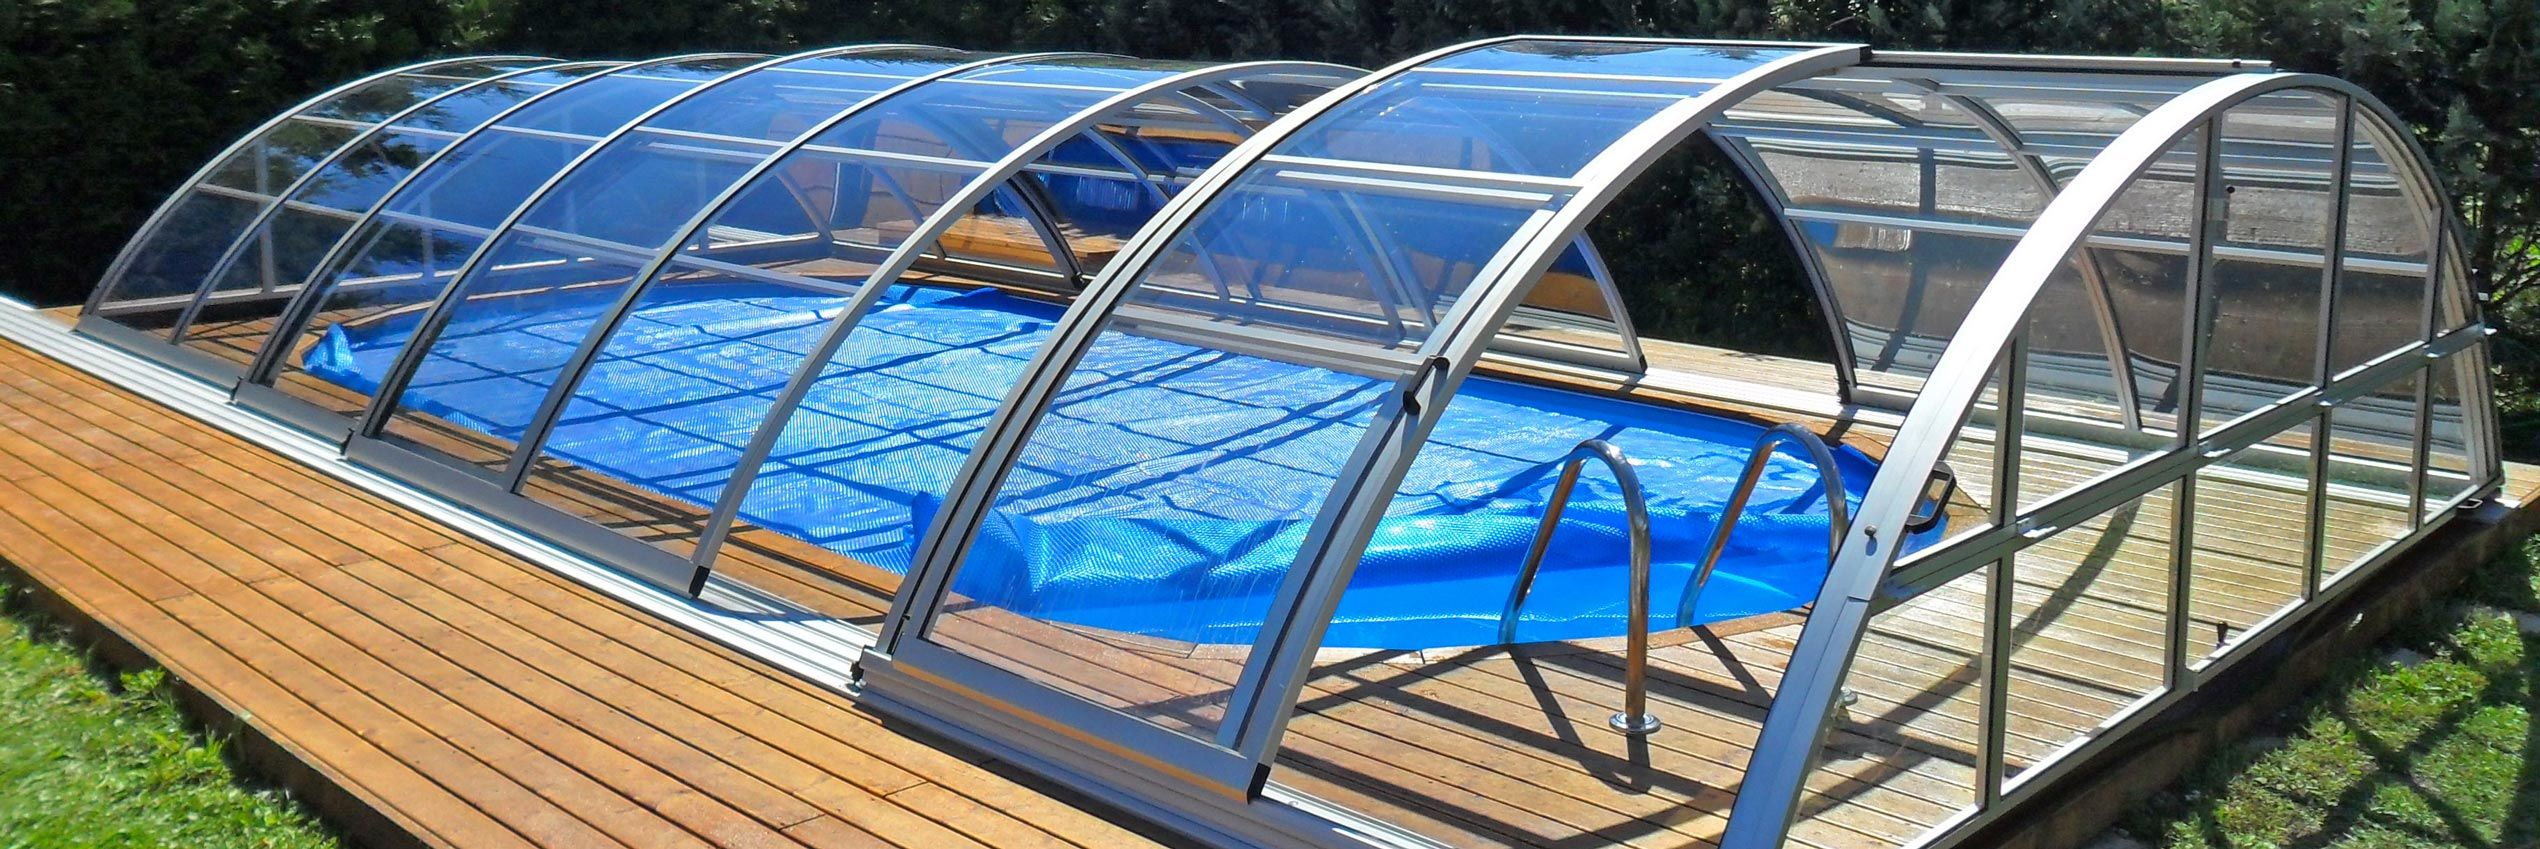 Medium retractable pool enclosures and pool covers sunrooms Retractable swimming pool enclosures